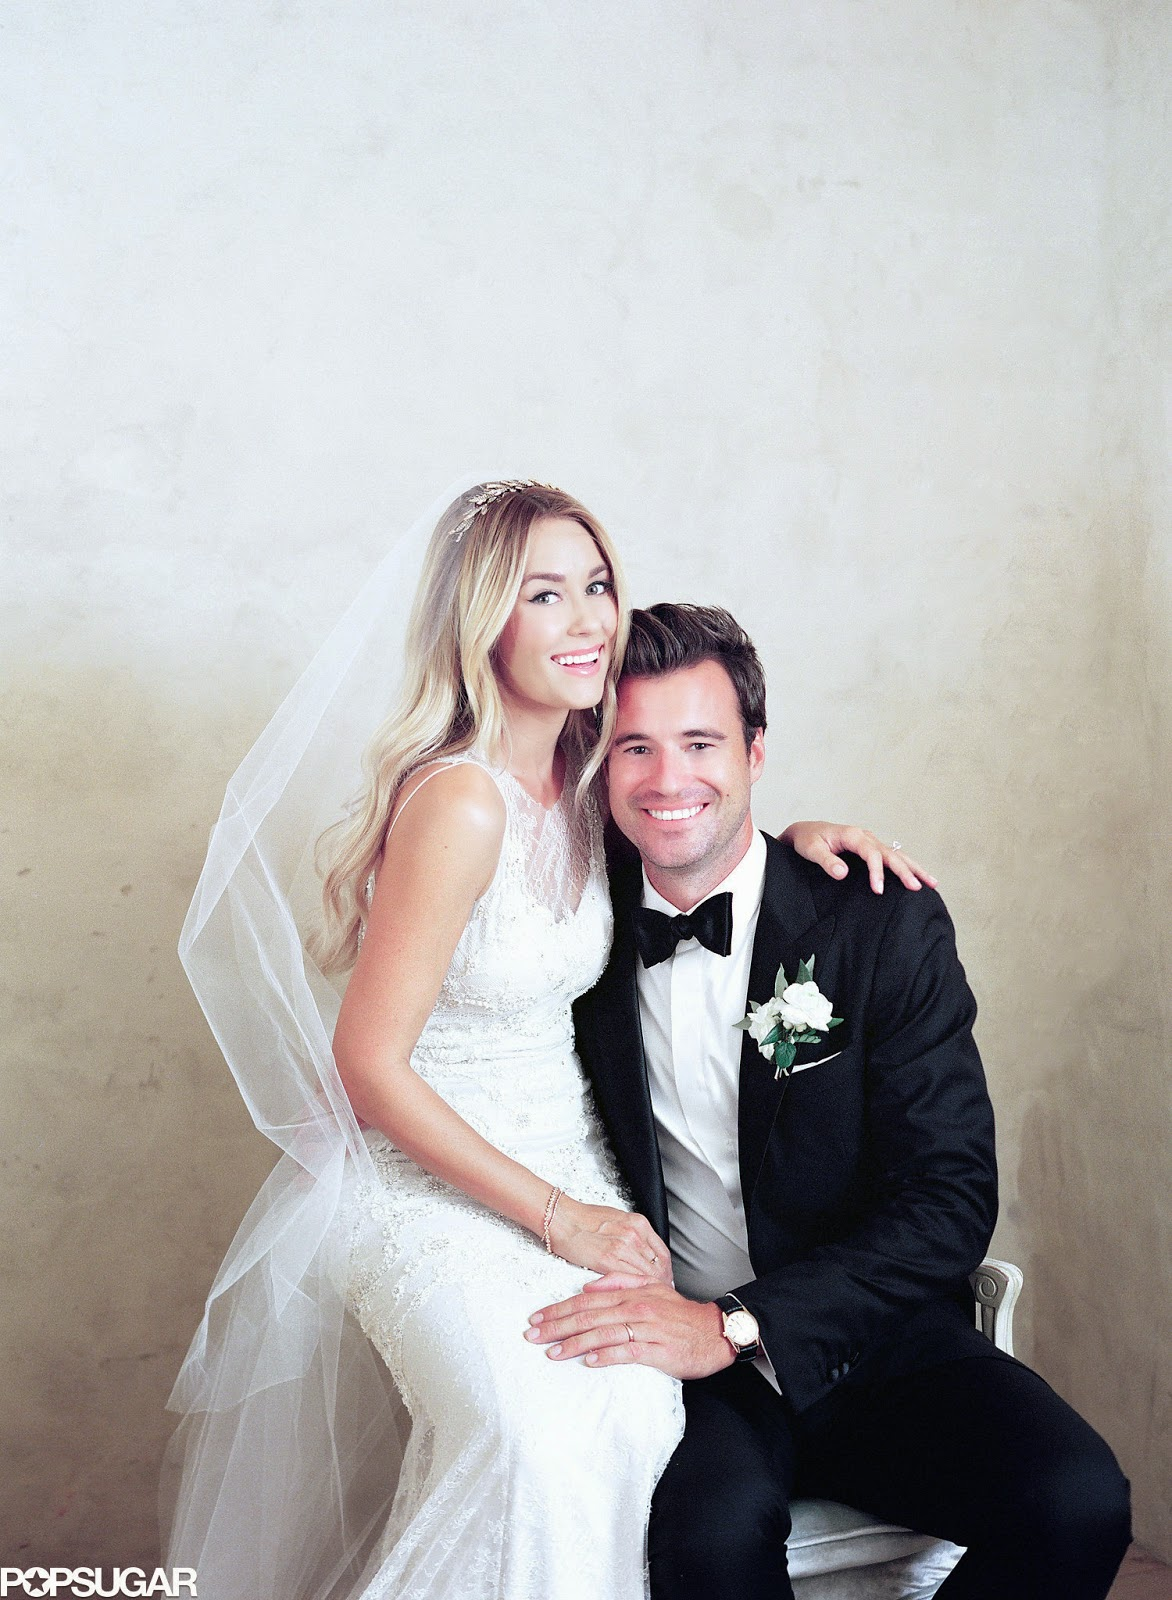 lauren conrad wedding - 500×555